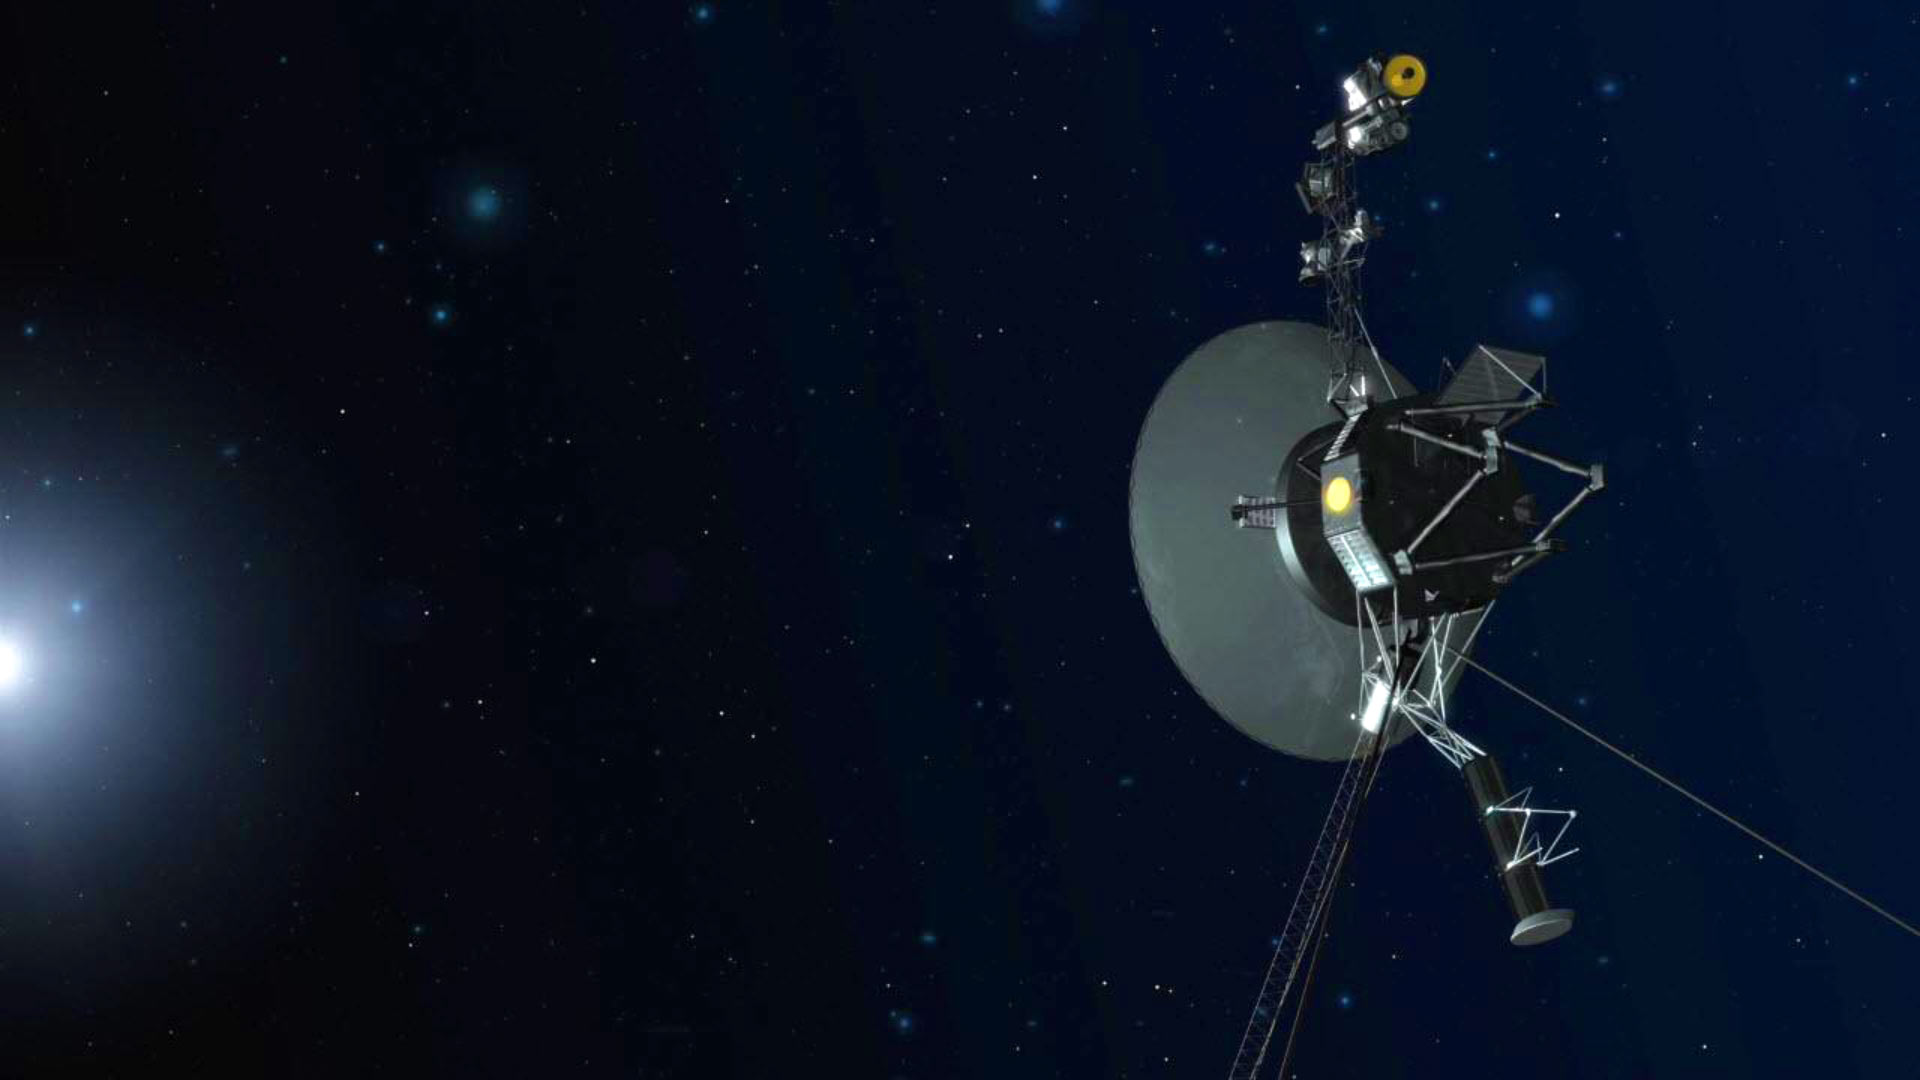 nasa u2019s voyager 1 spacecraft switches to backup thruster Archaeology Cartoons archaeology clipart